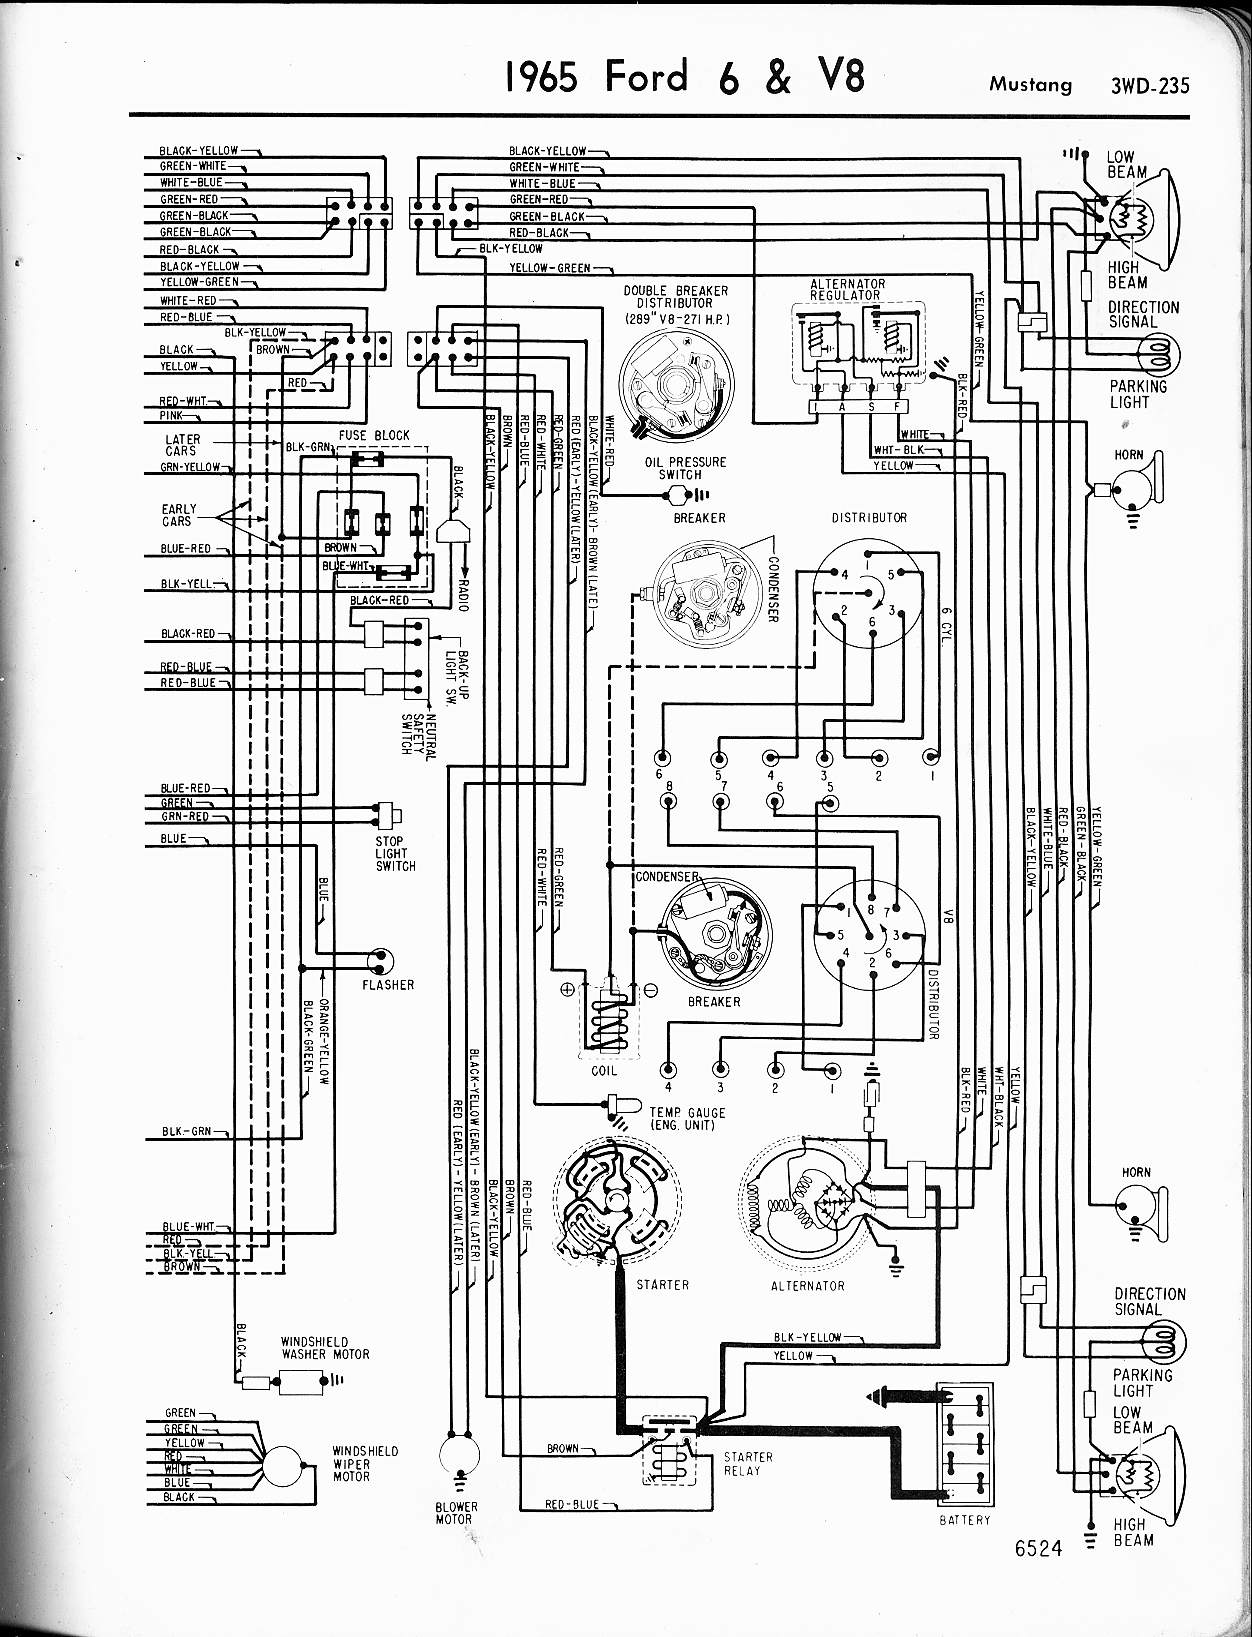 ford wiring diagrams 1965 6 v8 mustang right